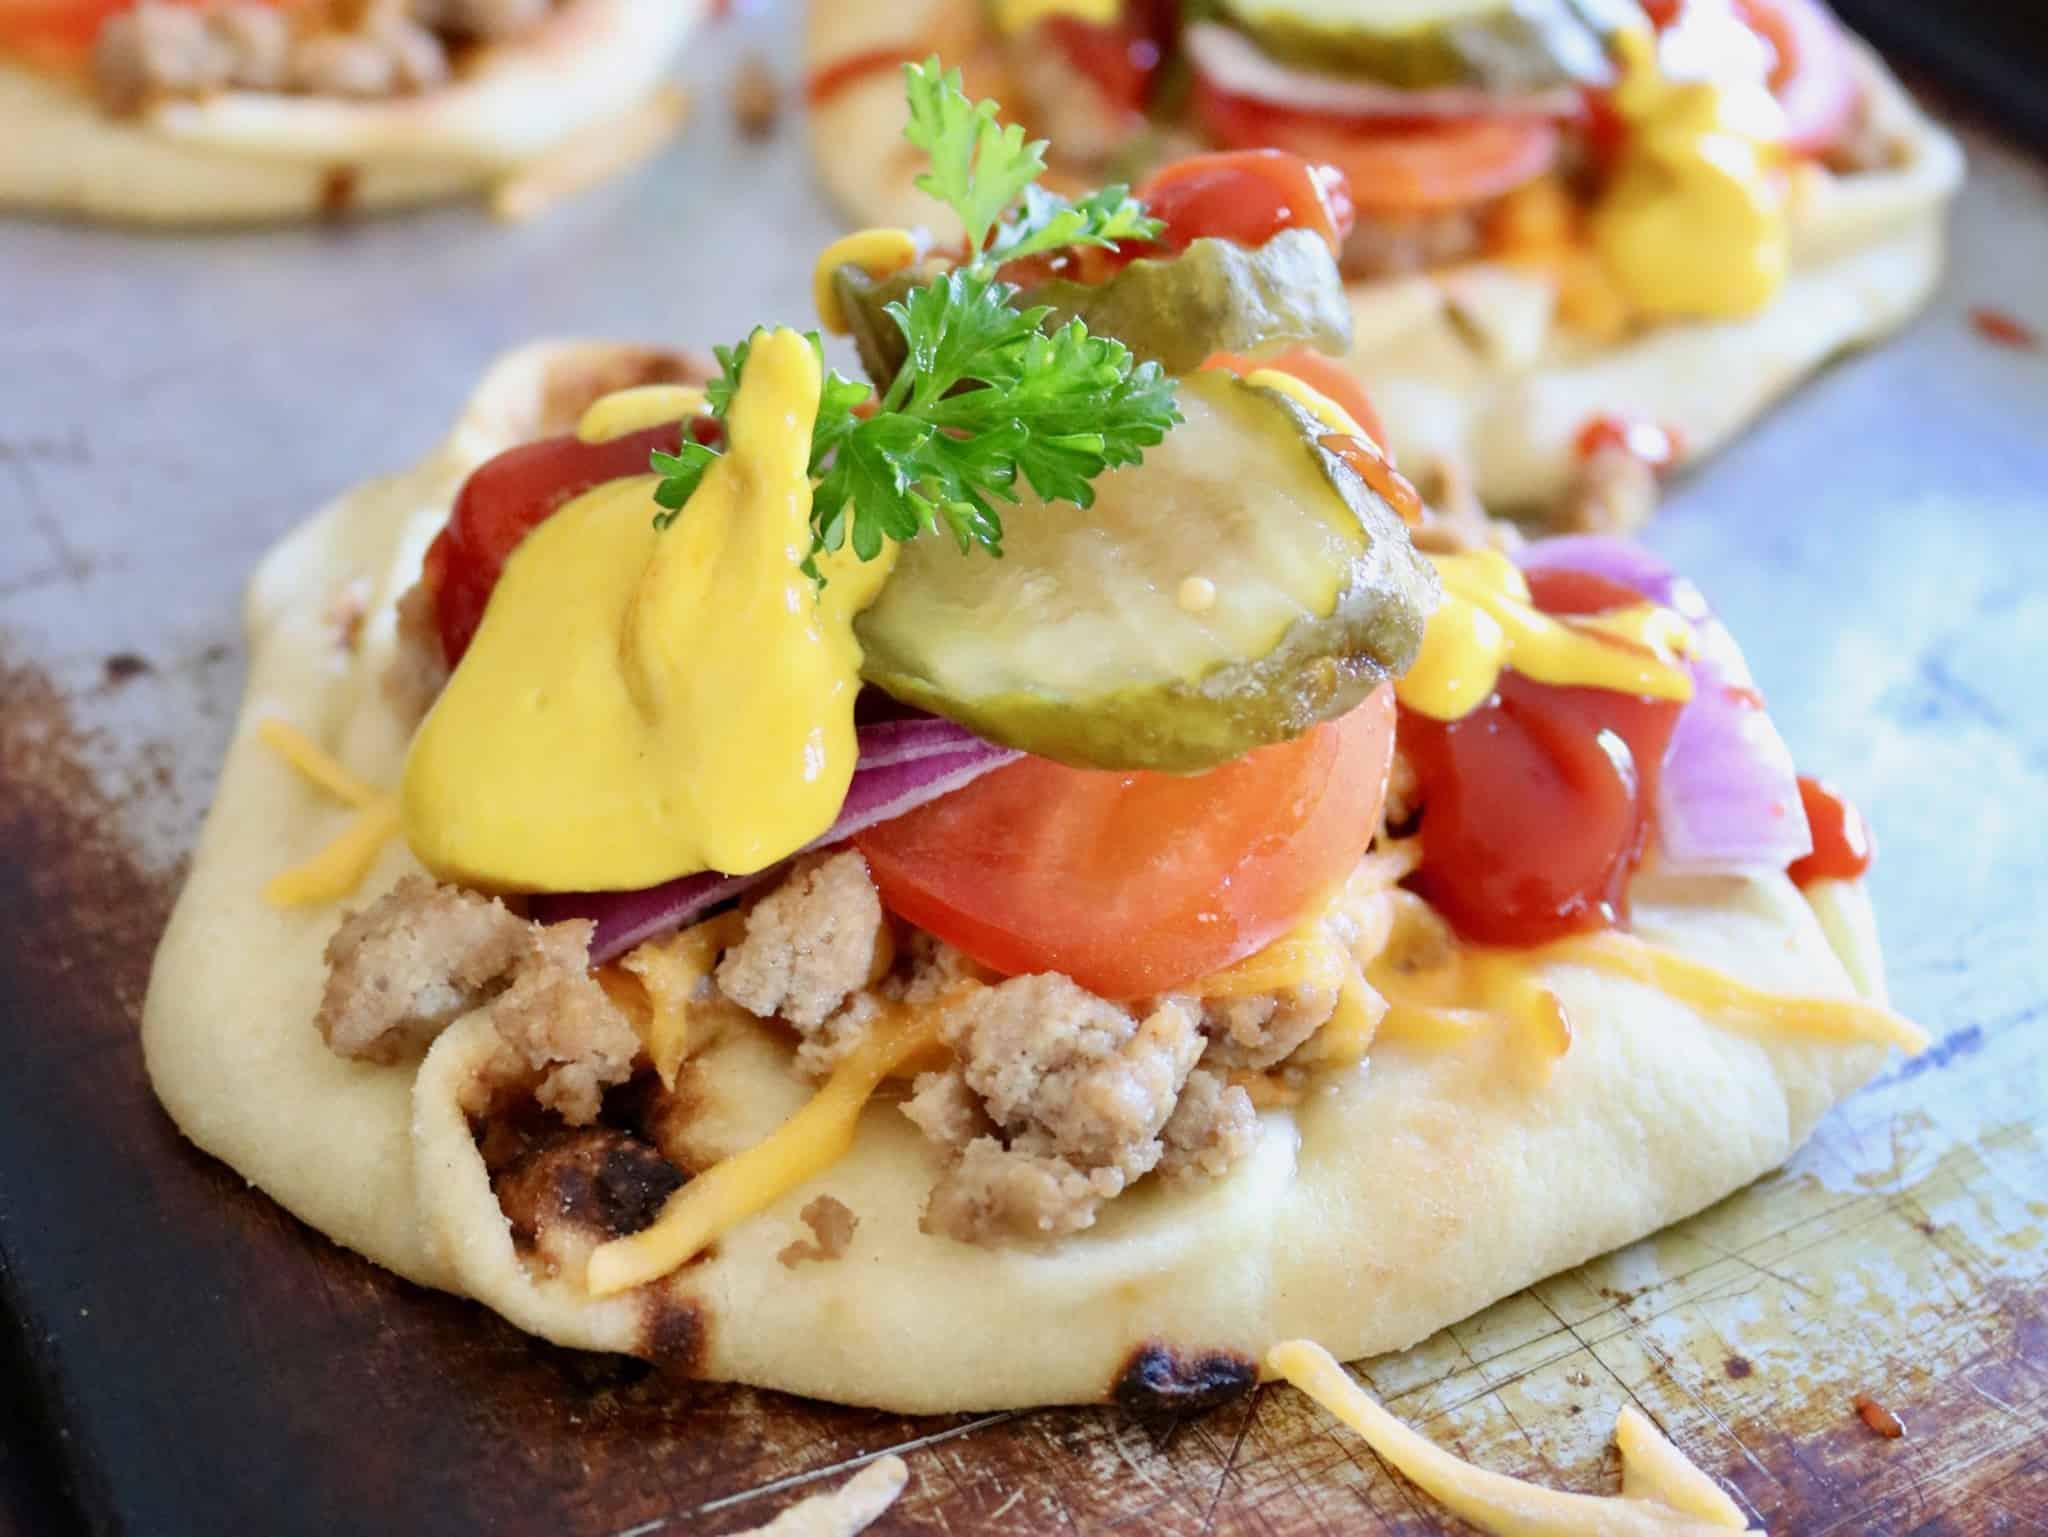 Cheeseburger Naan Pizza - A healthier way to enjoy two of your favorite comfort foods! @shawsimpleswaps